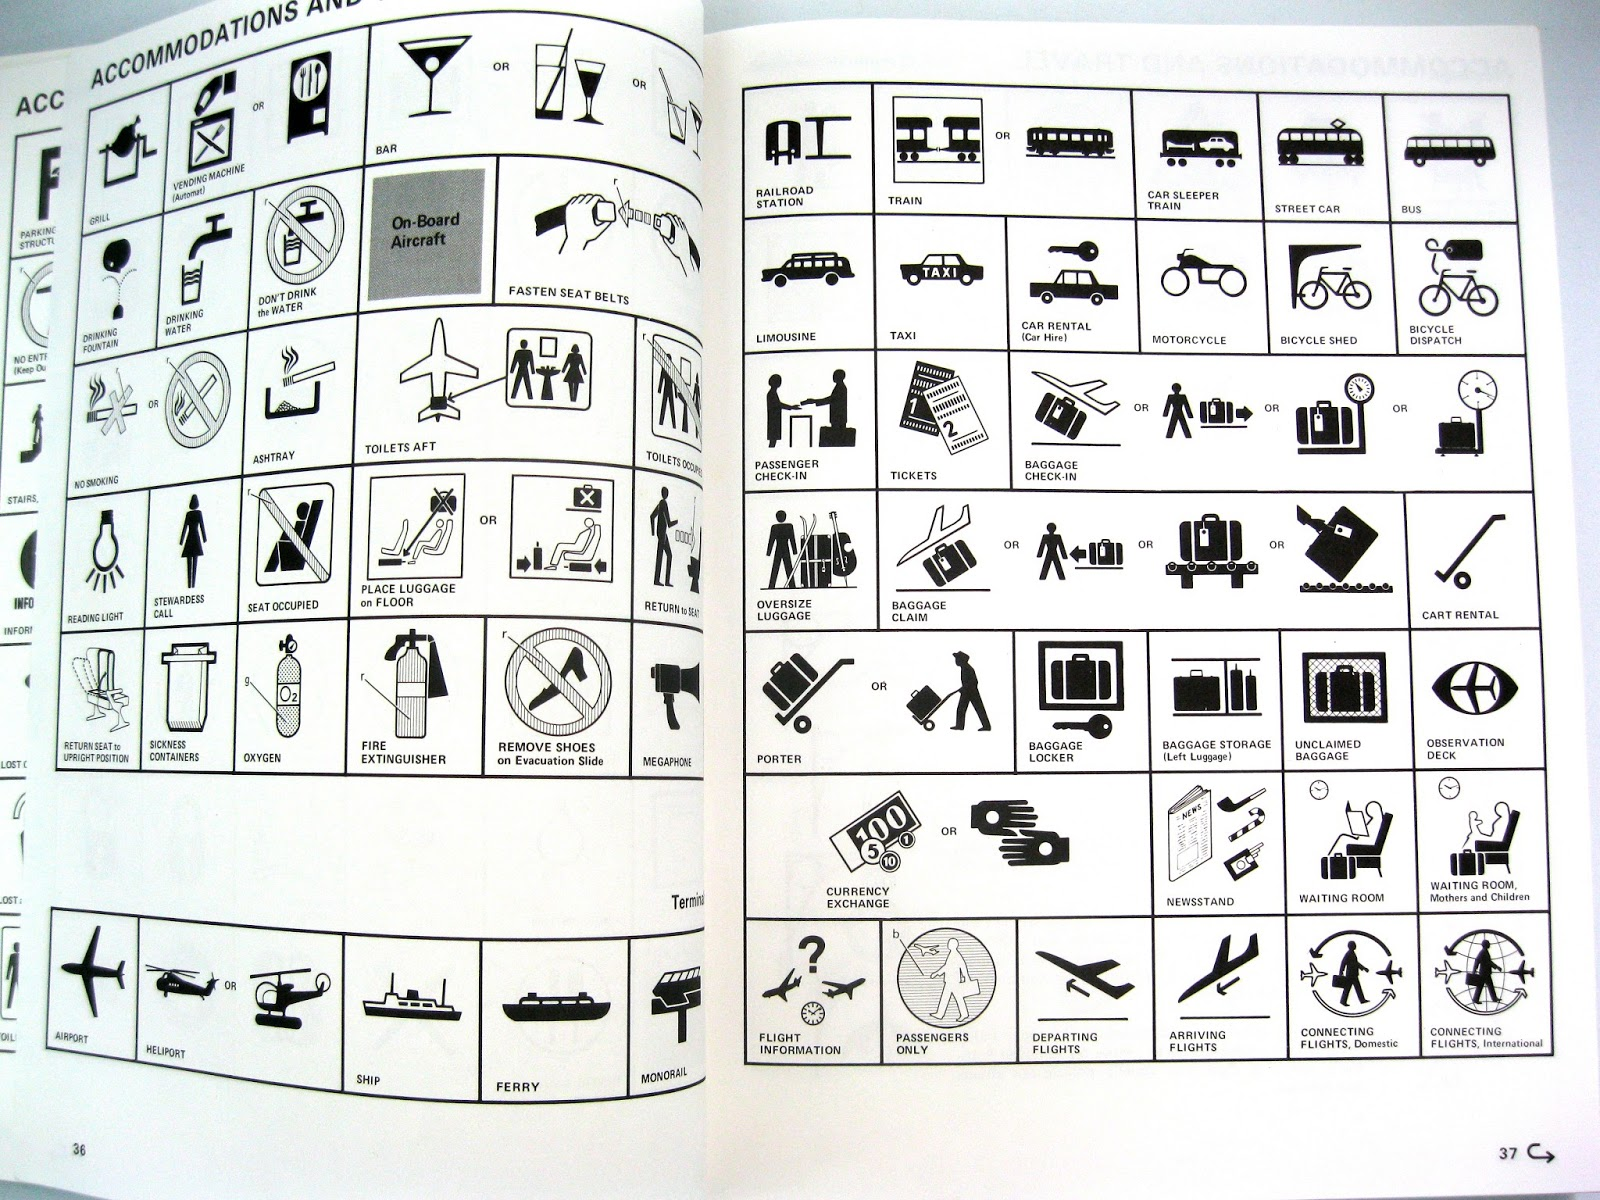 Bath uni science project symbols research it is called the symbol sourcebook by henry dreyfuss inside it is absolutely packed with hundereds of symbols the book is catagorised into sections biocorpaavc Gallery